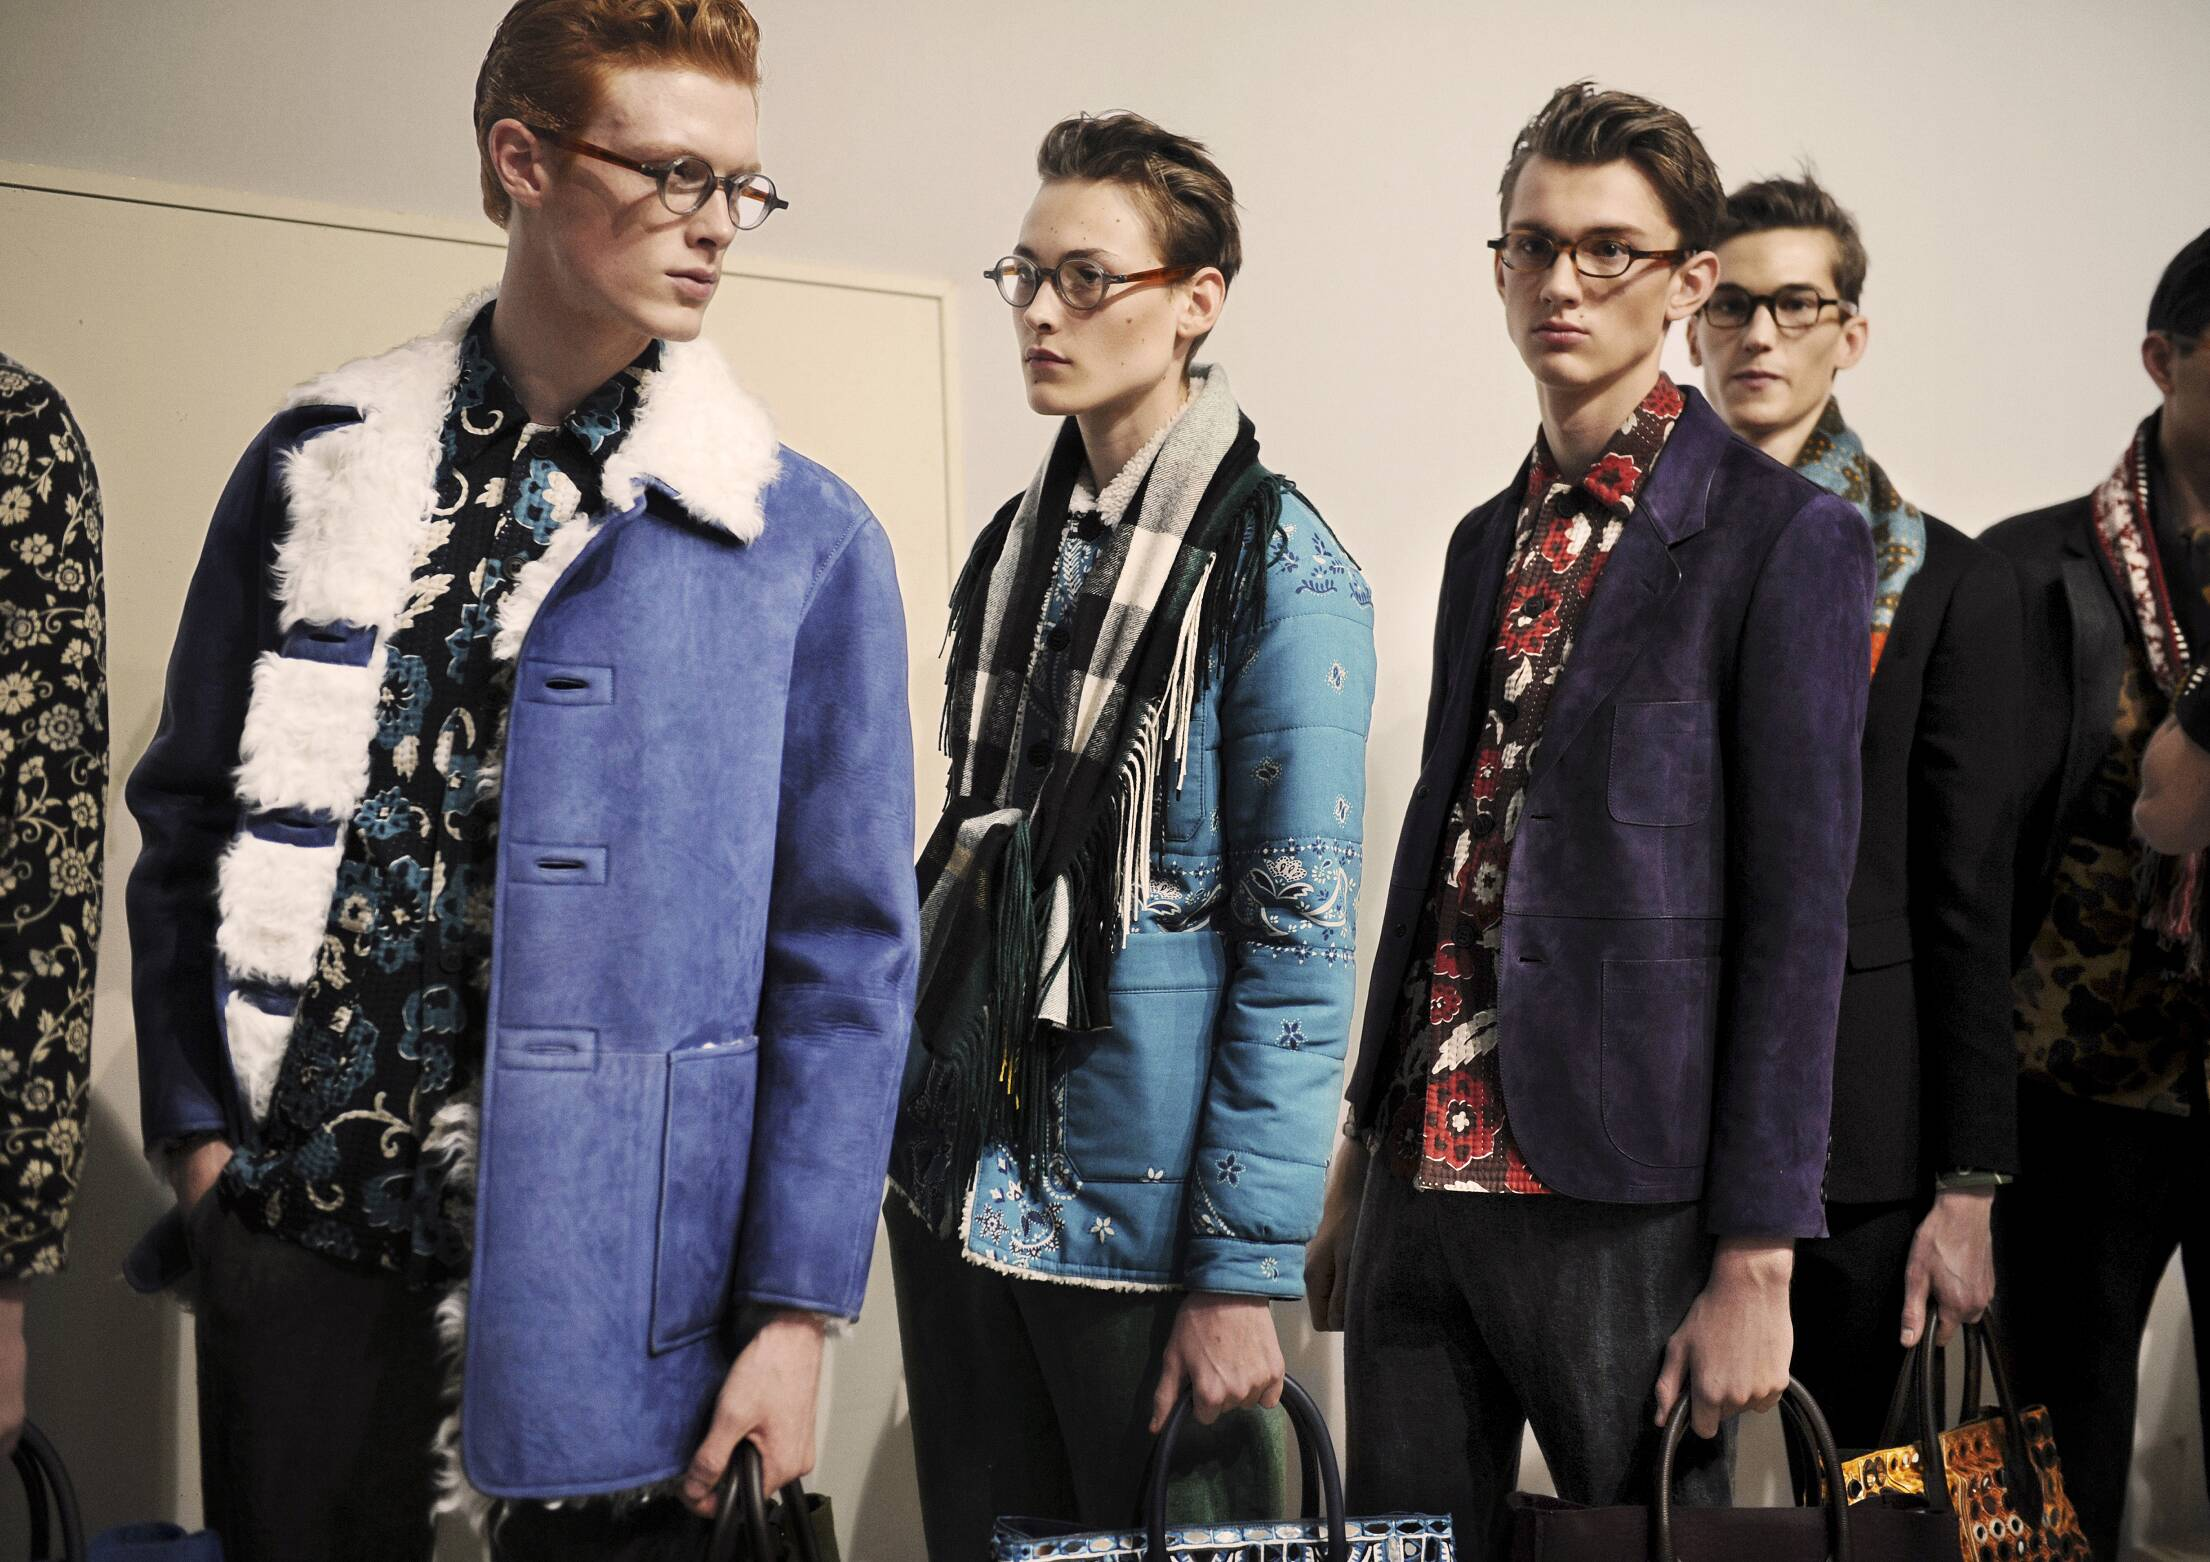 8a1a4831b3 BACKSTAGE BURBERRY PRORSUM FW 2015 MEN'S COLLECTION | The Skinny Beep